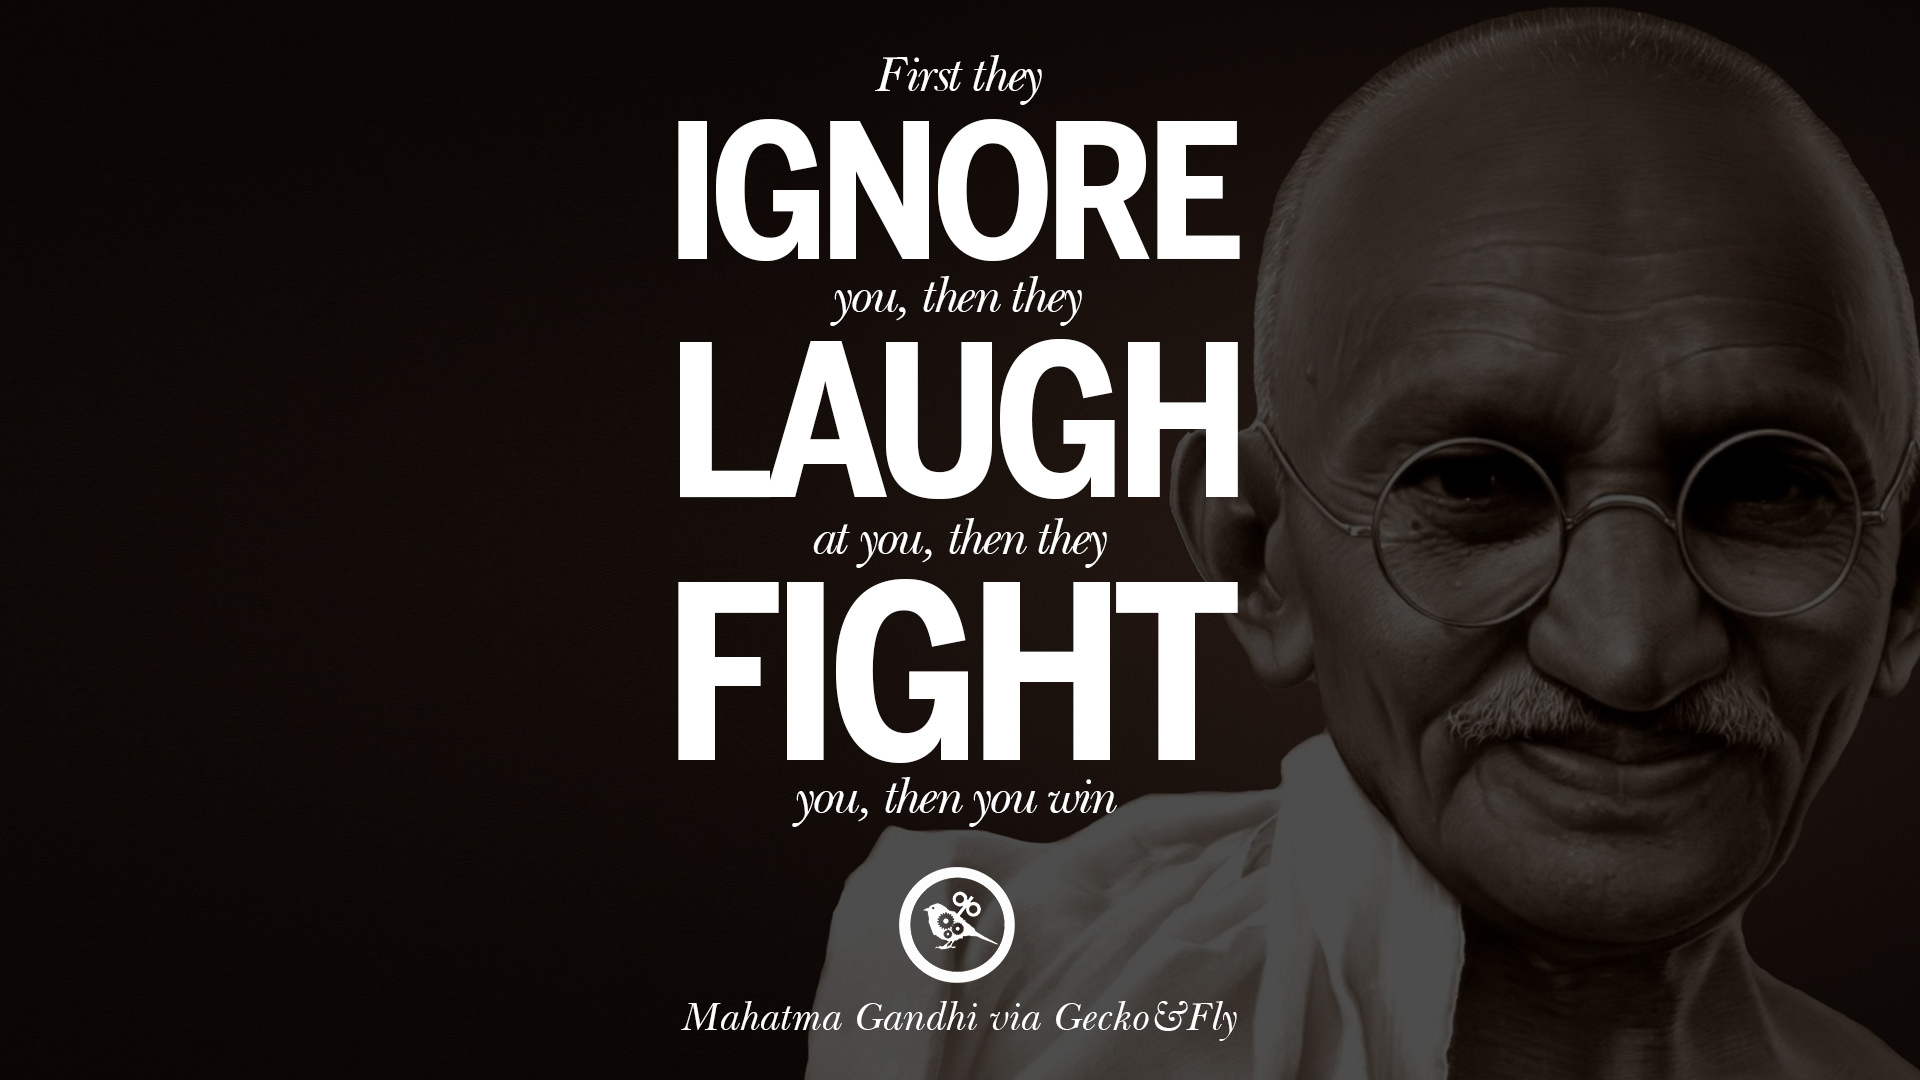 mahatma gandhi quotes on peace quotesgram